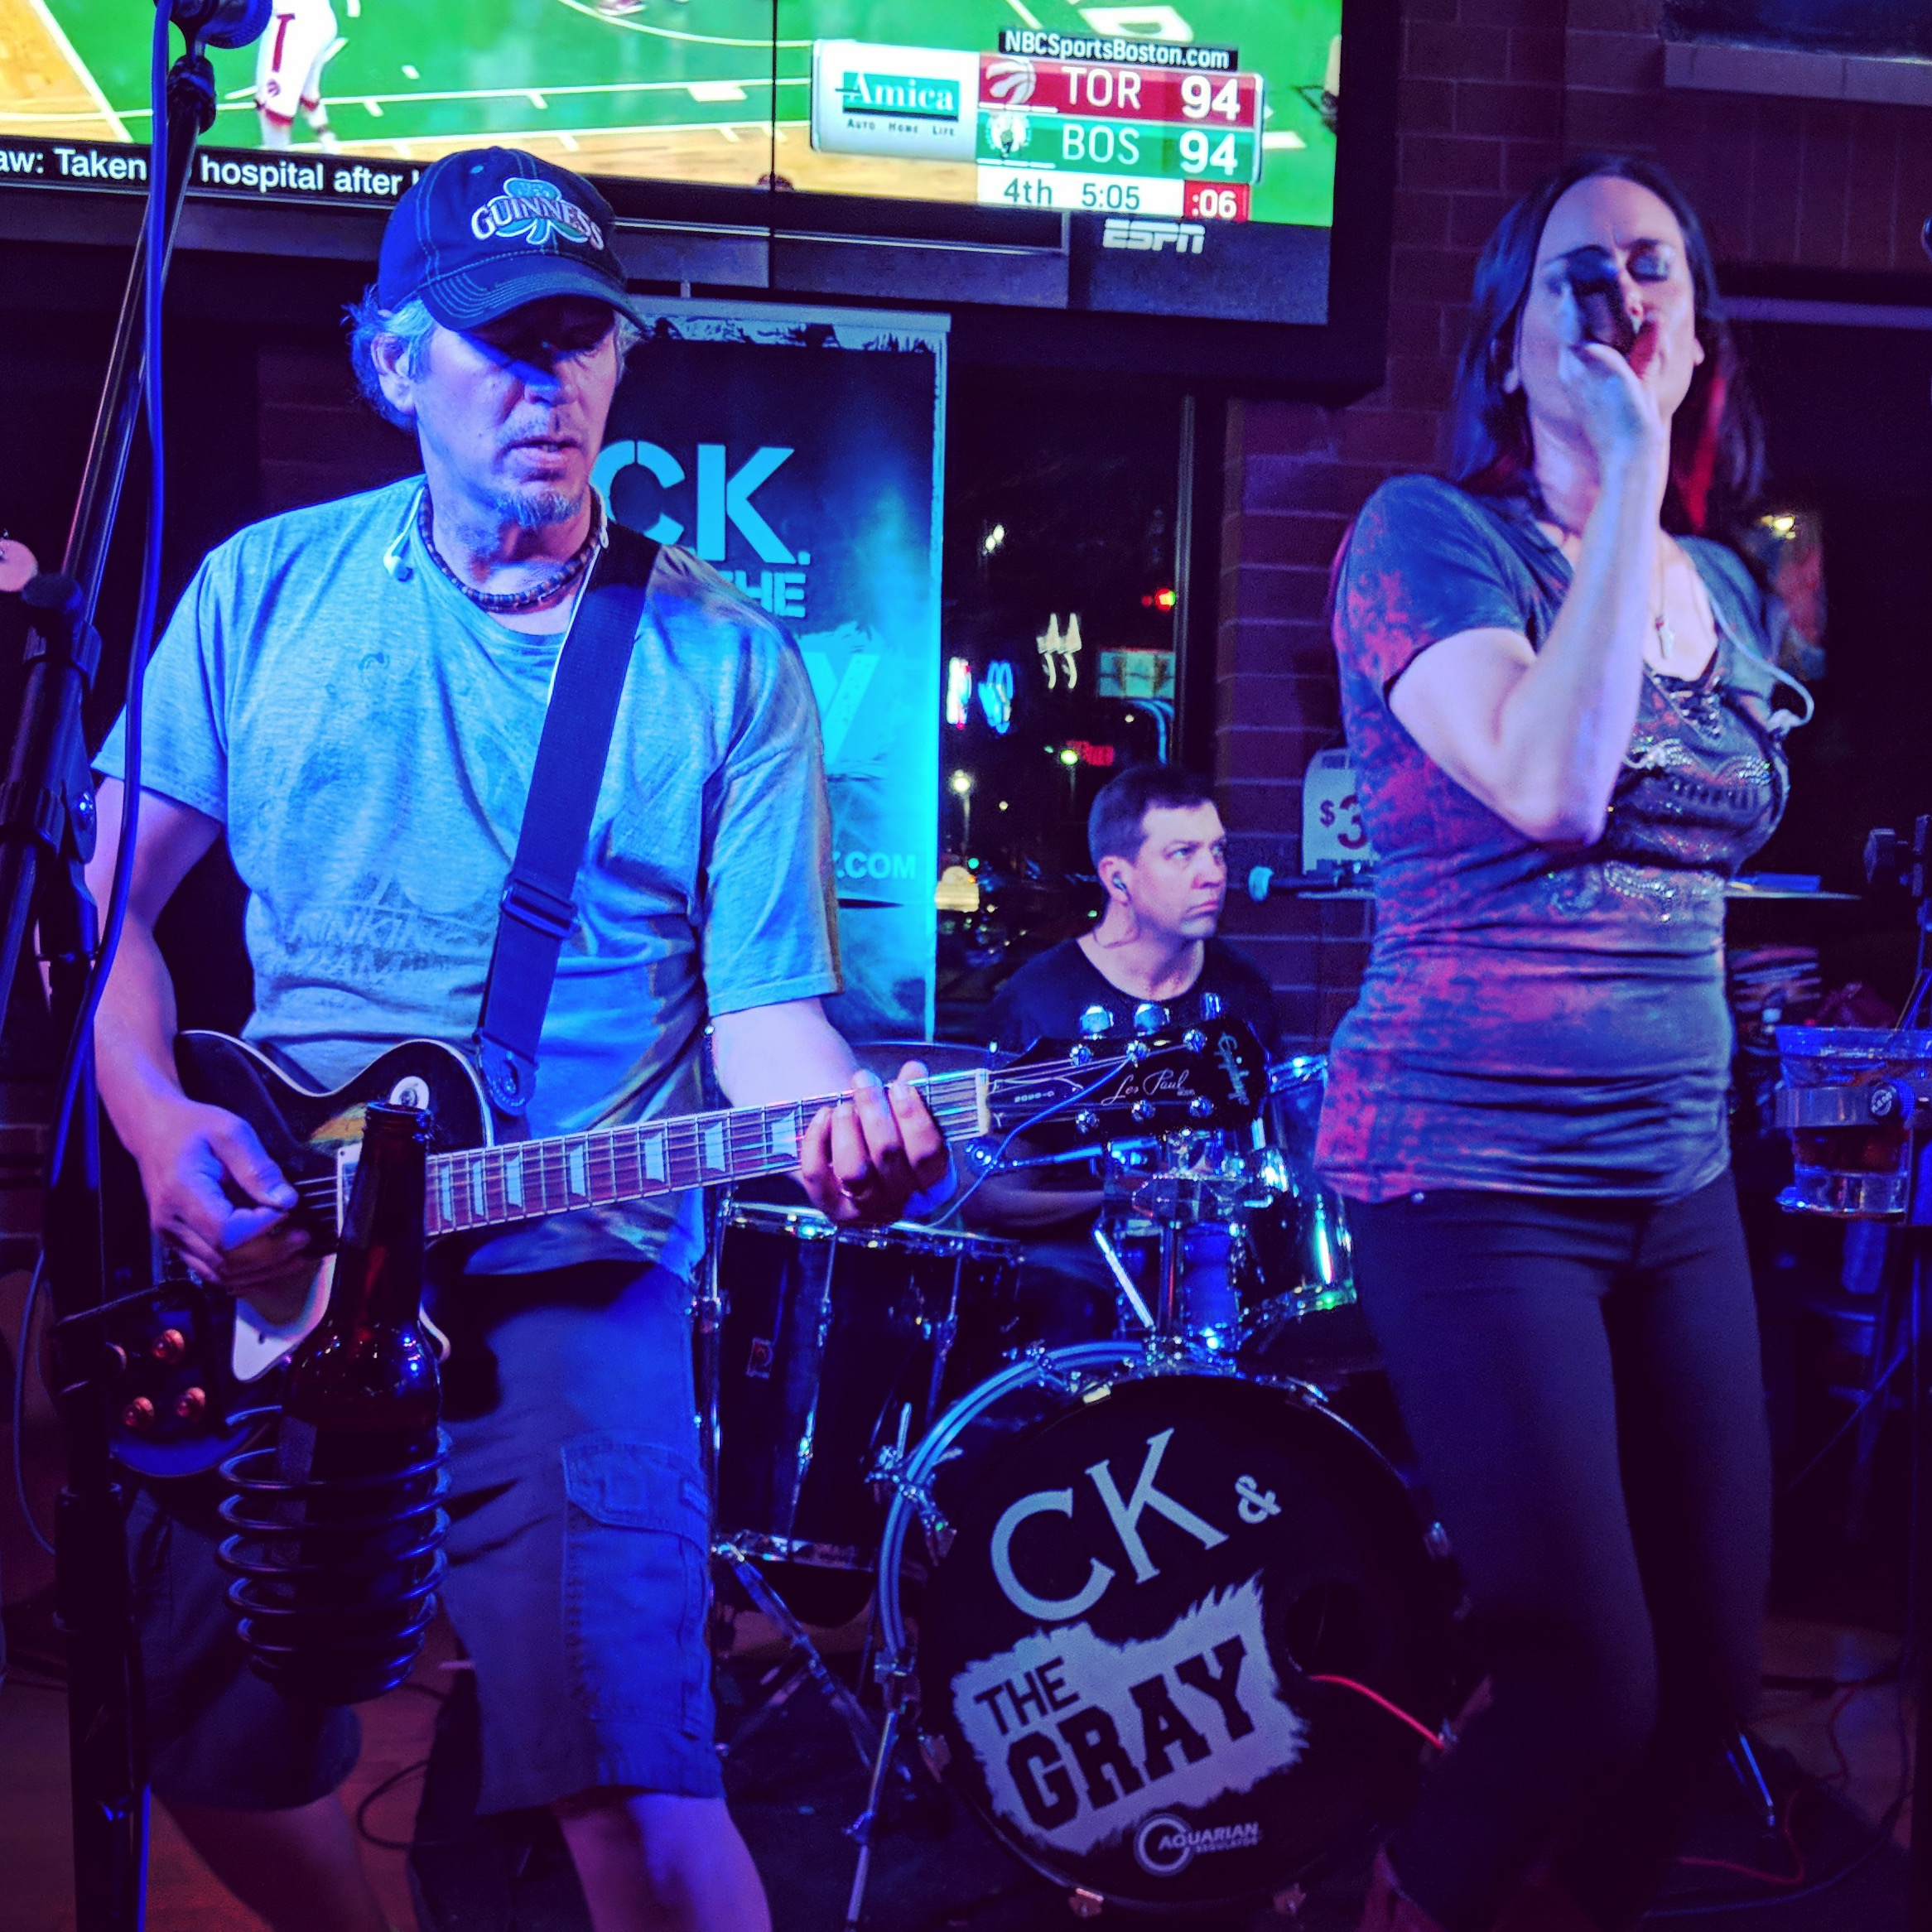 Kris Hachmeister, Carter Szok and Chrissy Karl of C.K and The Gray